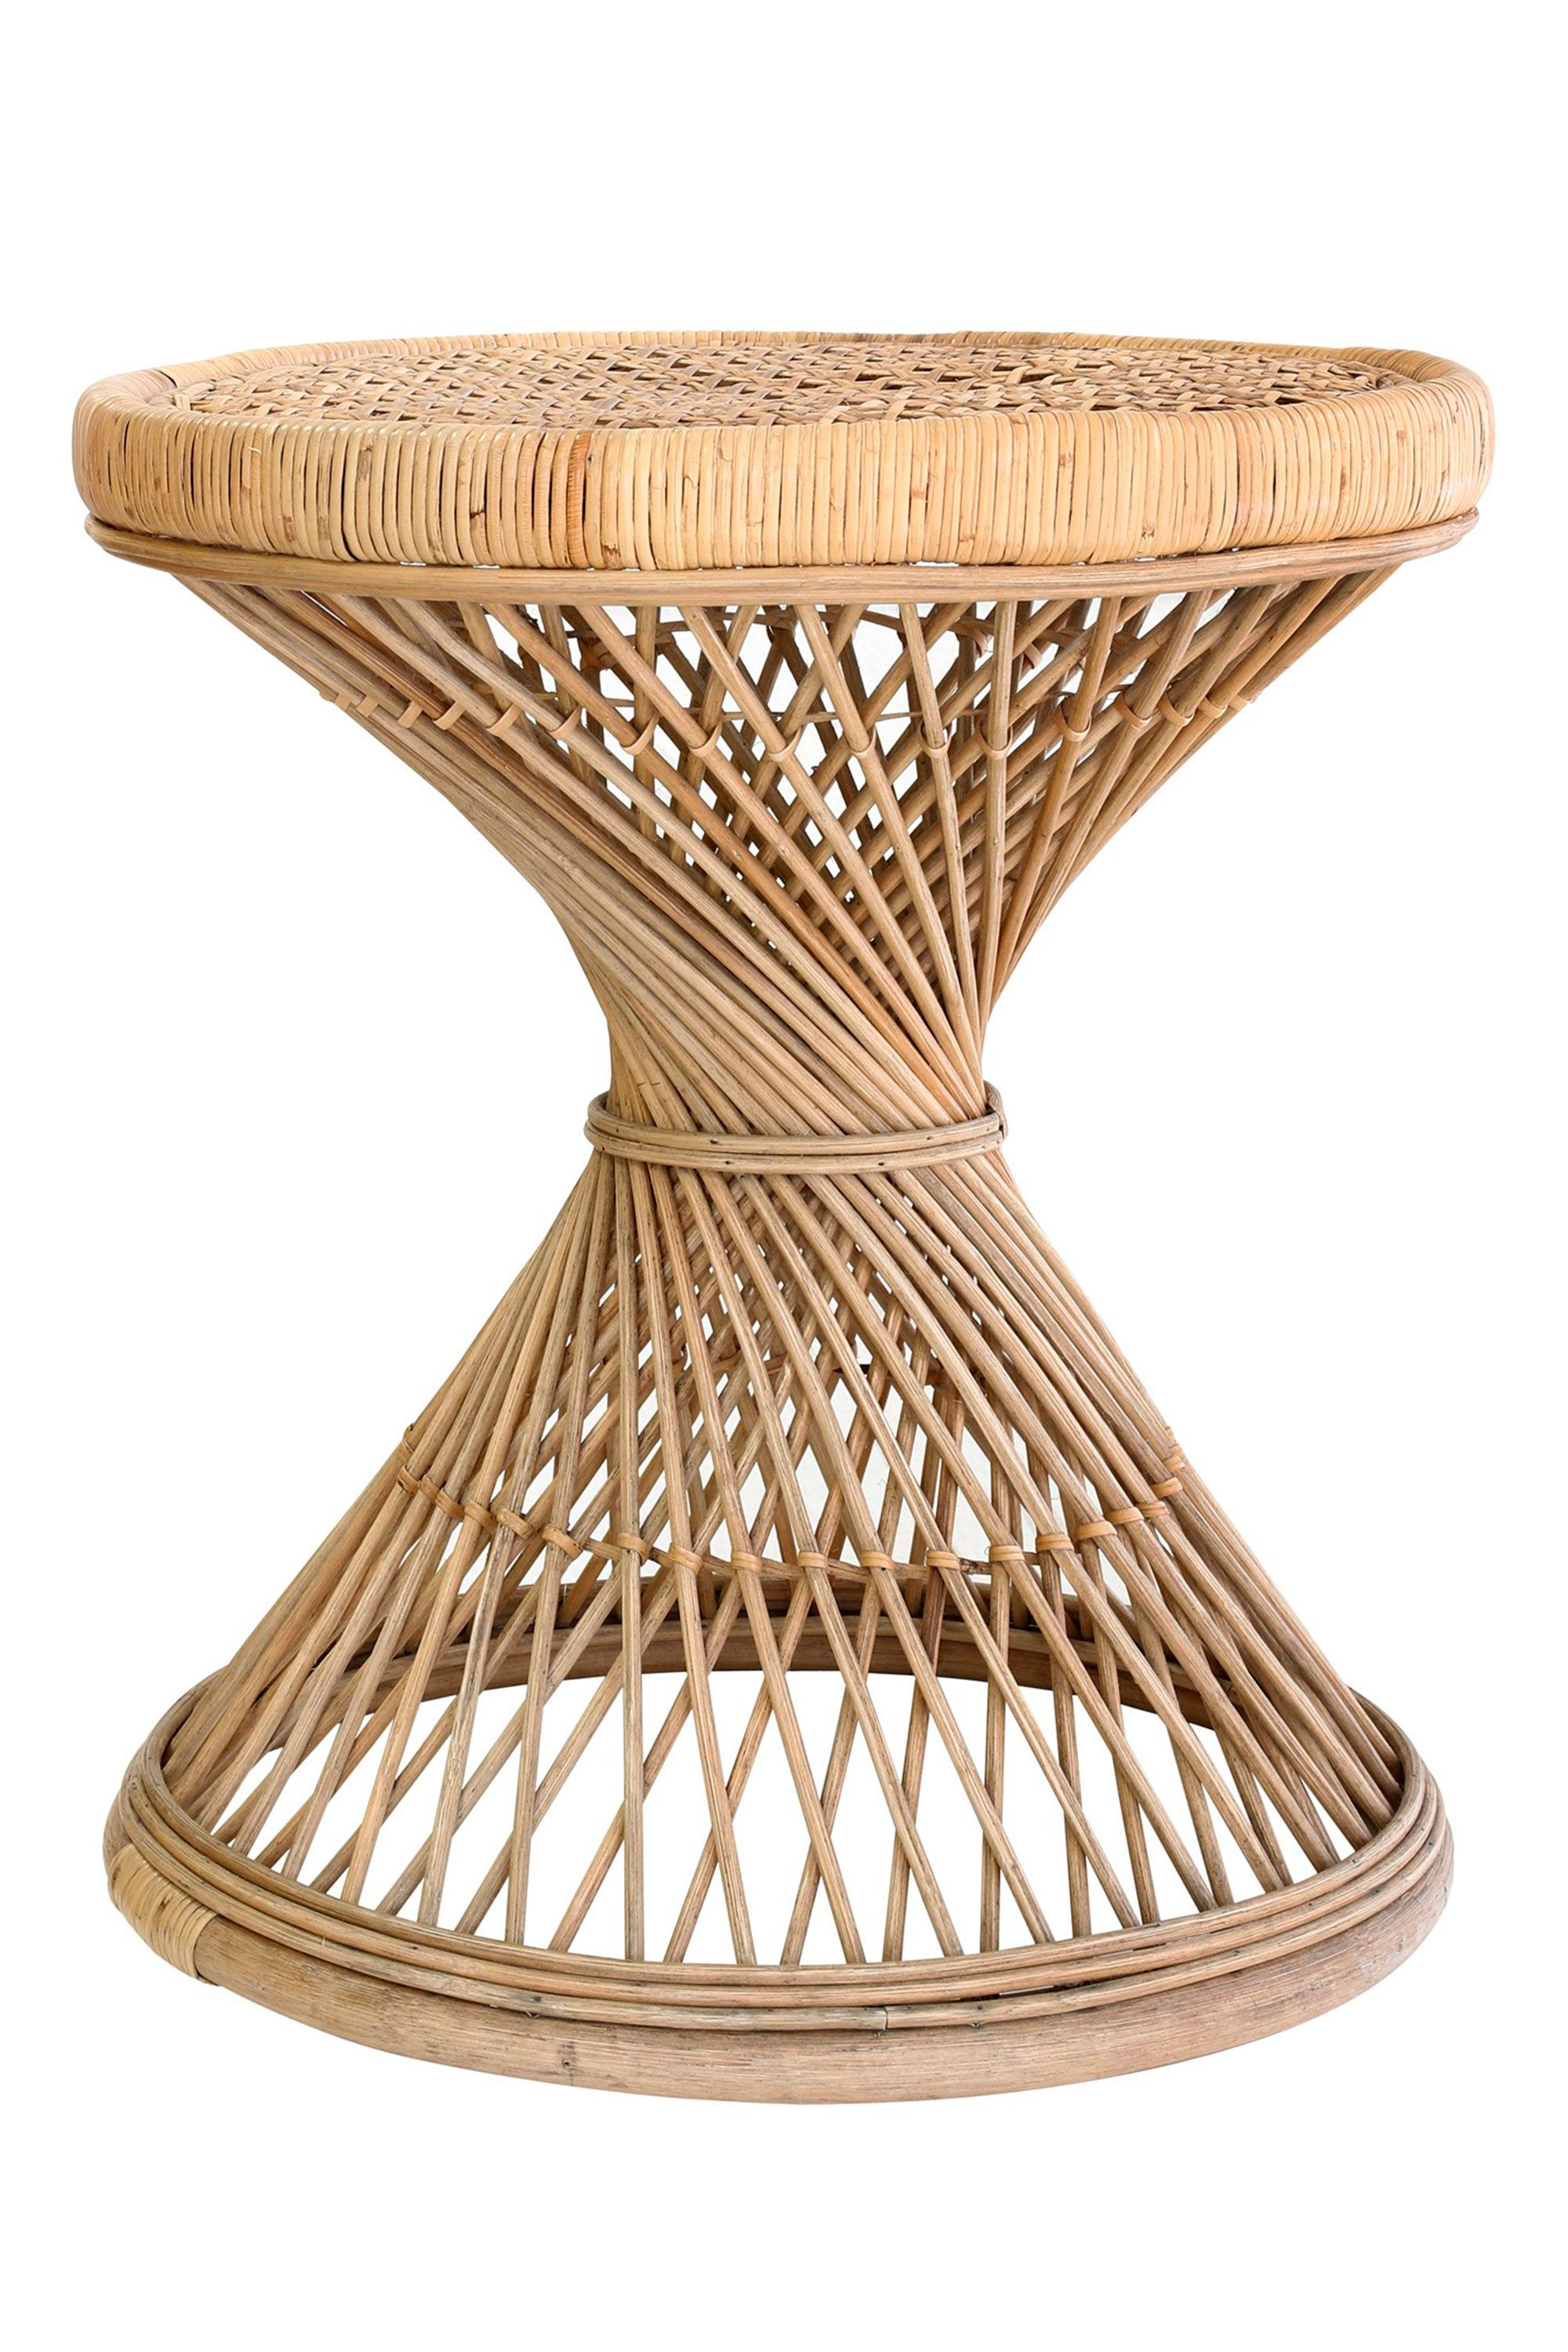 Admirable 15 Pieces Of Rattan Furniture To Buy Now Rattan Interiors Theyellowbook Wood Chair Design Ideas Theyellowbookinfo